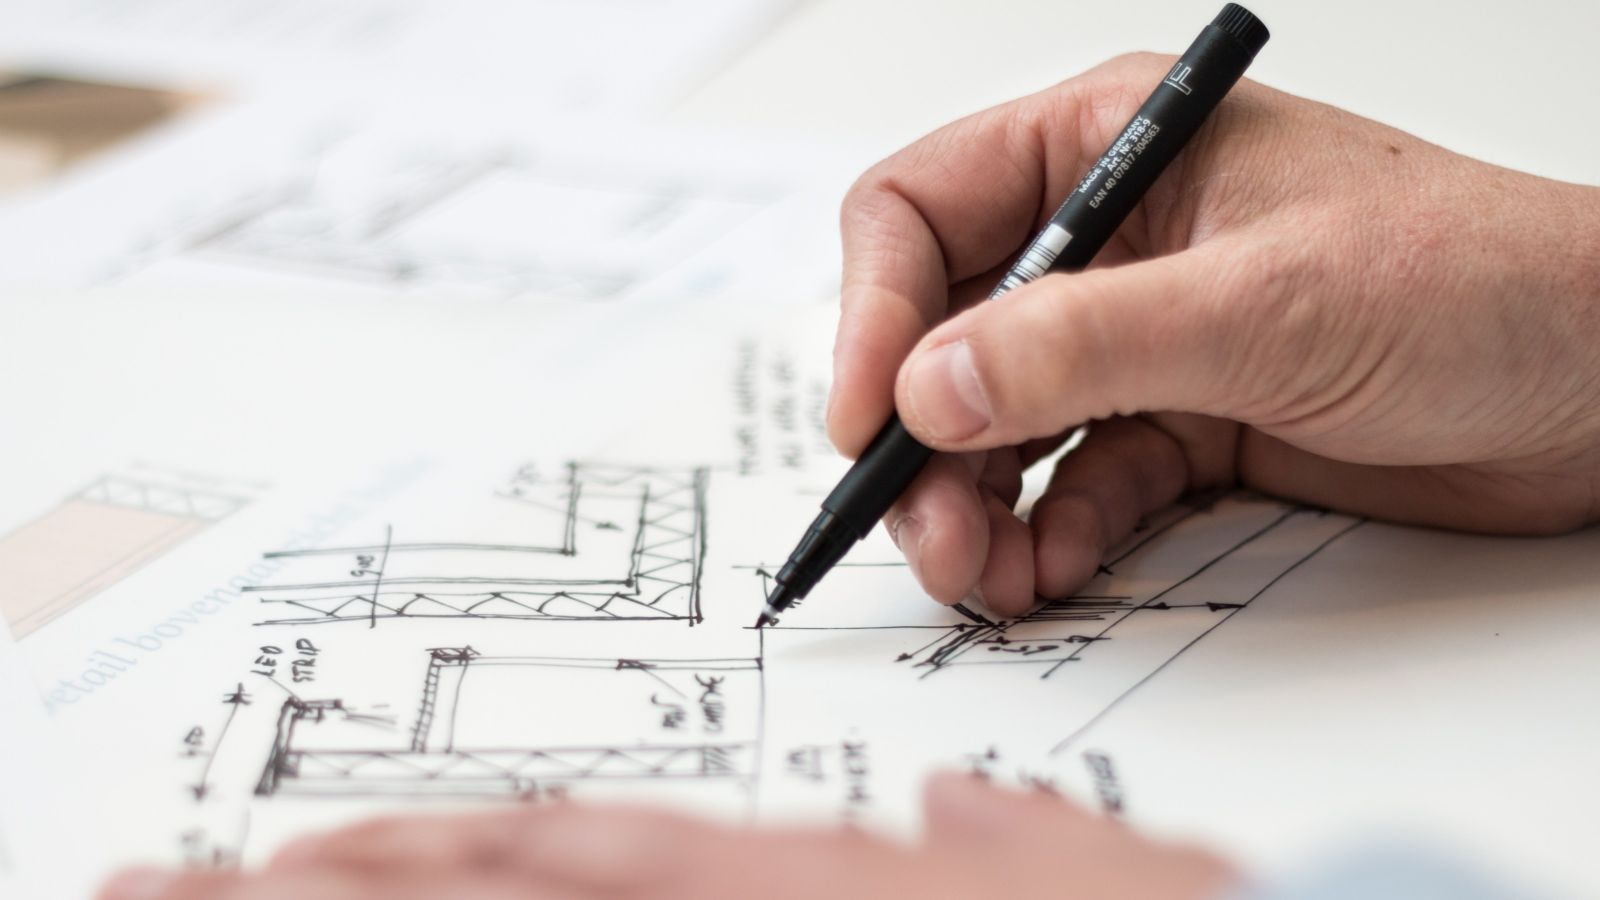 person holding black pen drawing architectural plans